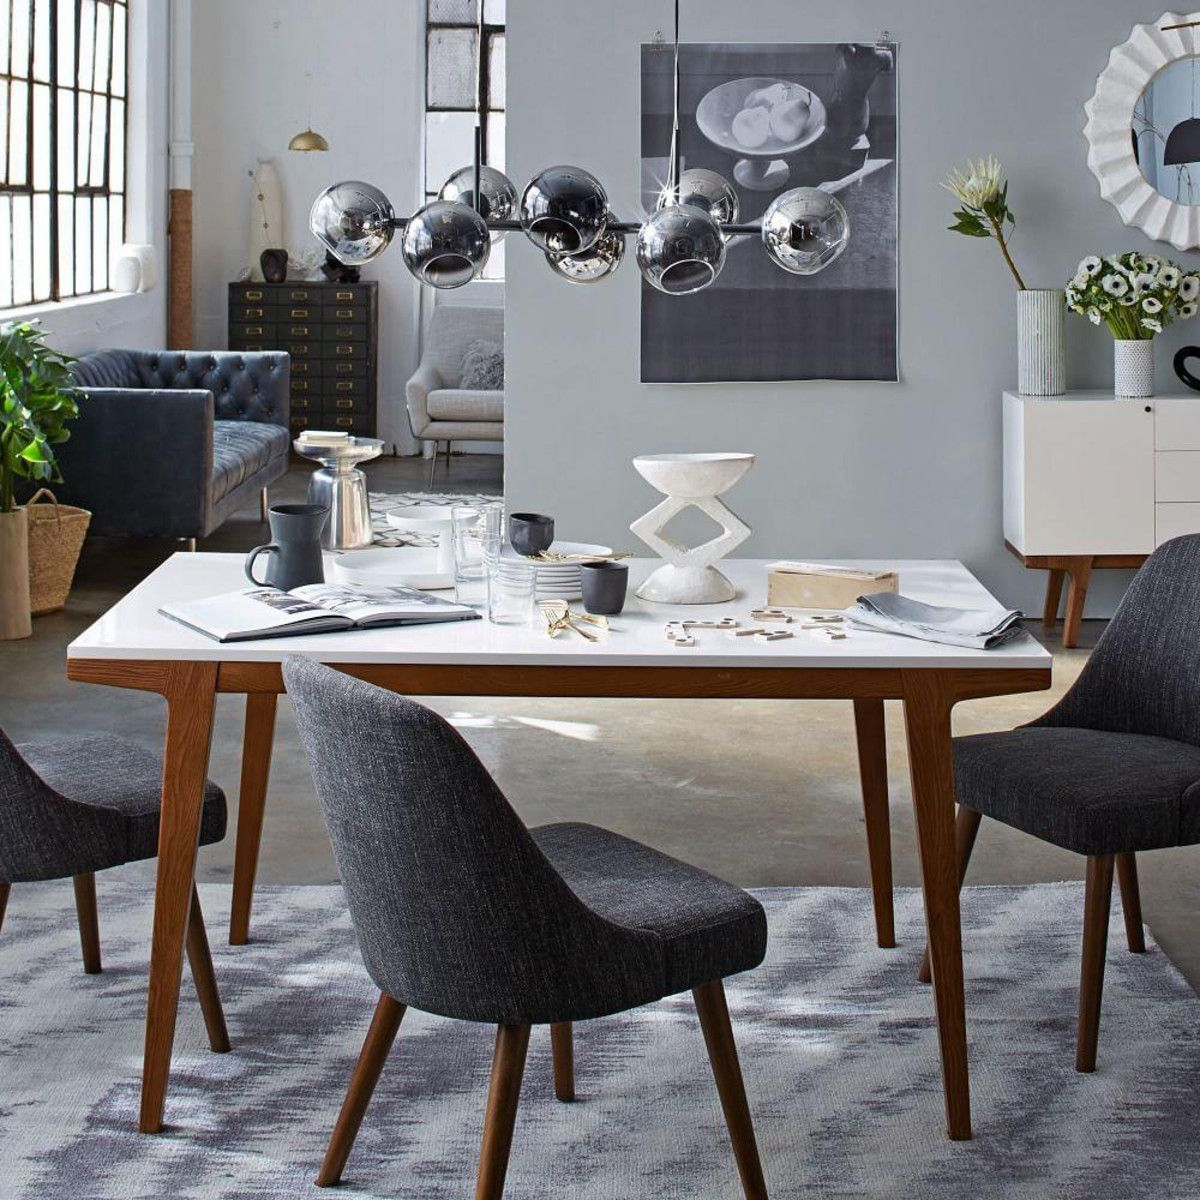 Modern Dining Table west elm Canada Modern dining